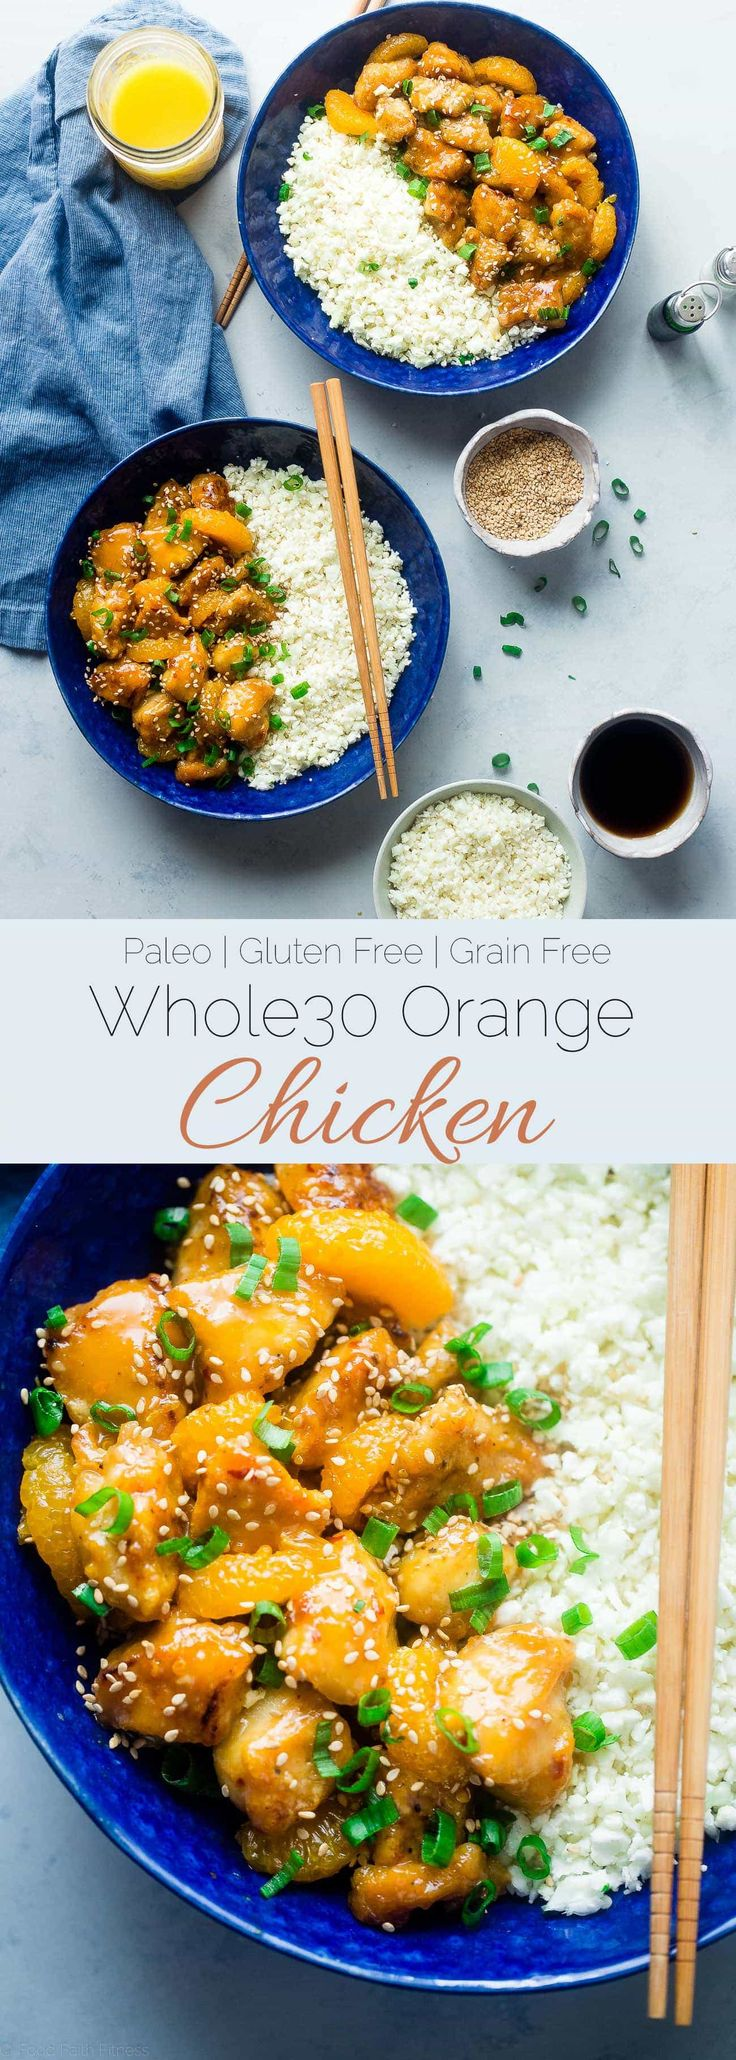 Whole30 Orange Chicken - This 30 minute, paleo orange chicken is so much better and healthier than takeout! It's a quick and easy, whole30 compliant dinner that the whole family will love!   Foodfaithfitness.com   @FoodFaithFit